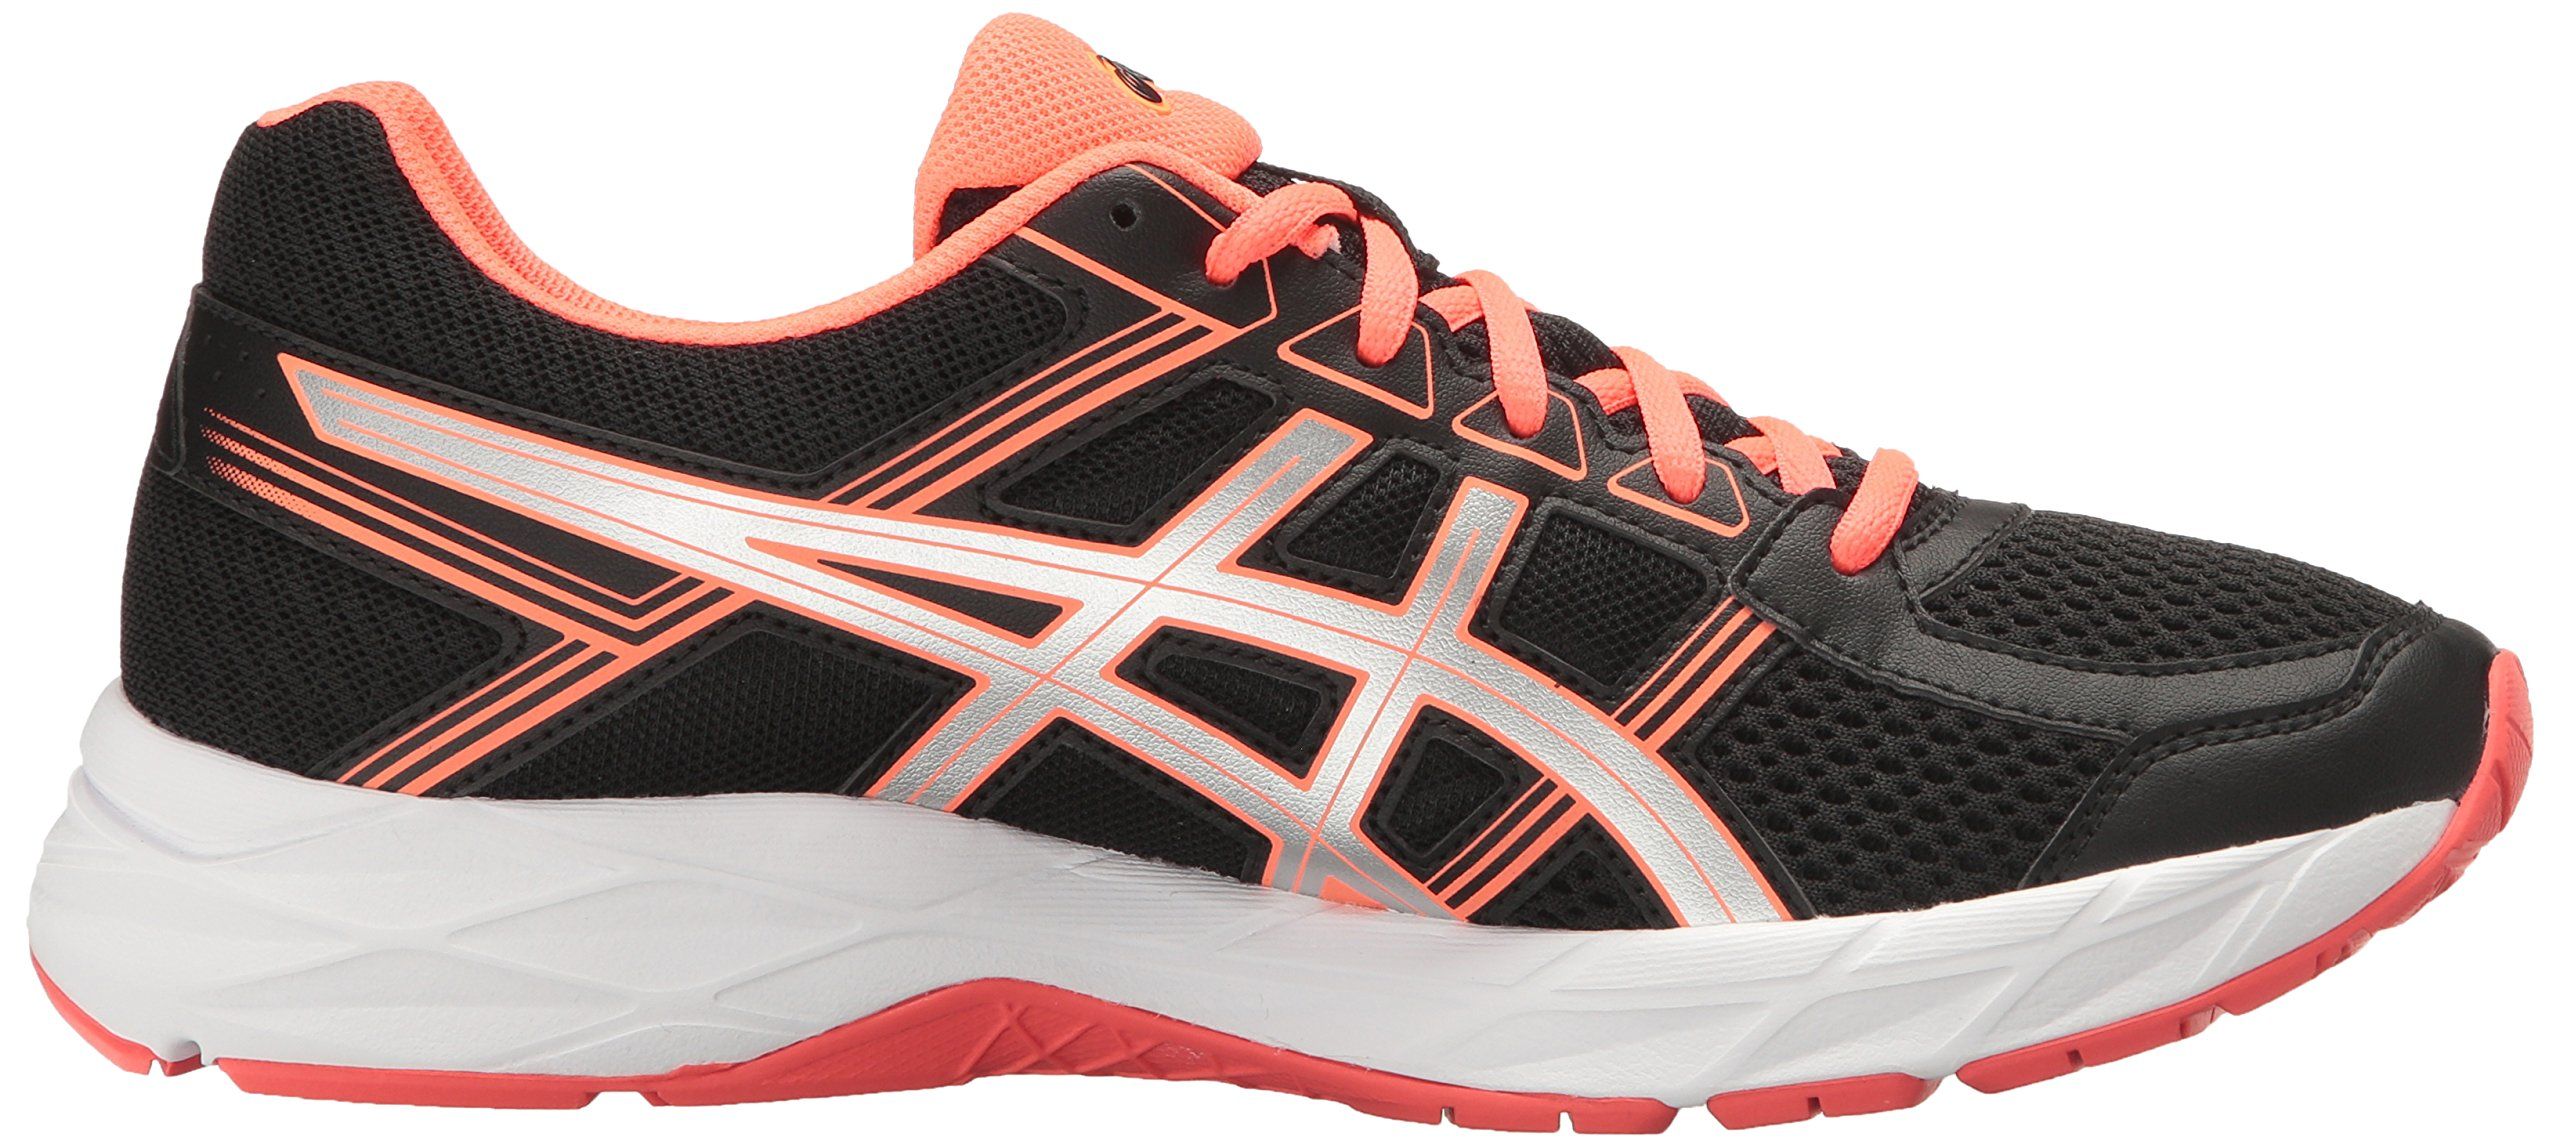 ASICS Women's Gel-Contend 4 Running Shoe, Black/Silver/Flash Coral, 5 M US by ASICS (Image #7)